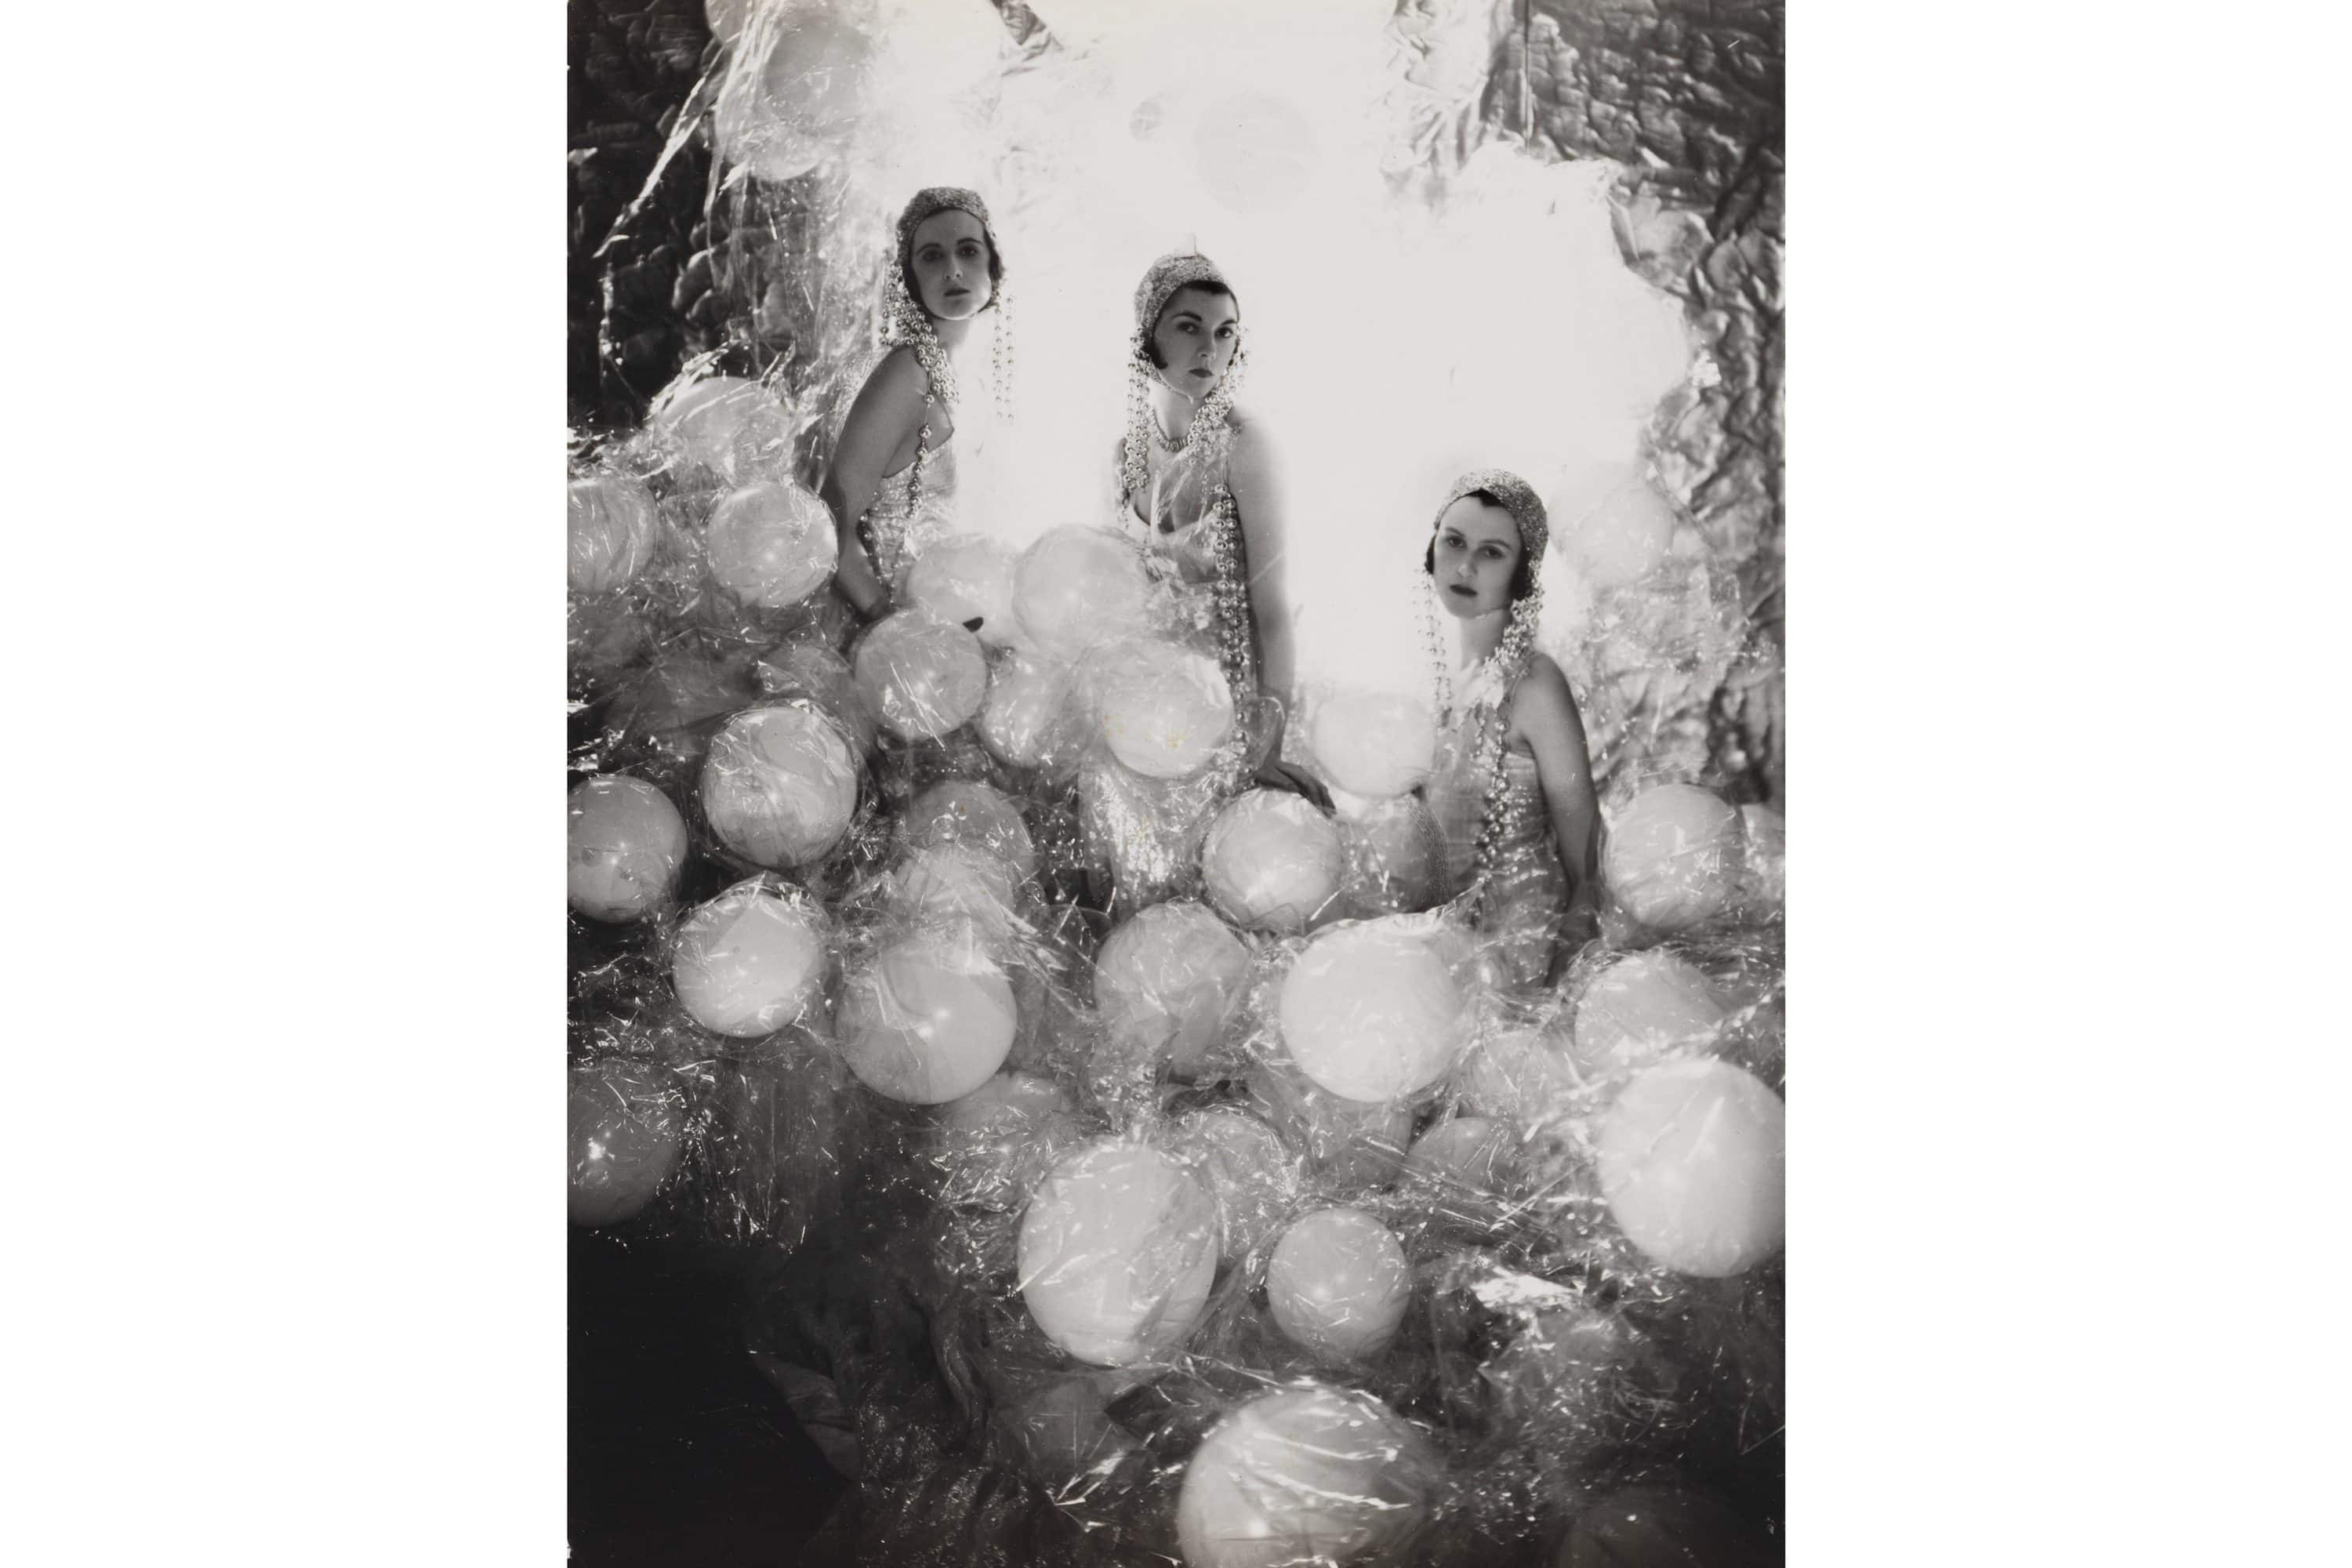 Three women pose with balloons in a Cecil Beaton photograph